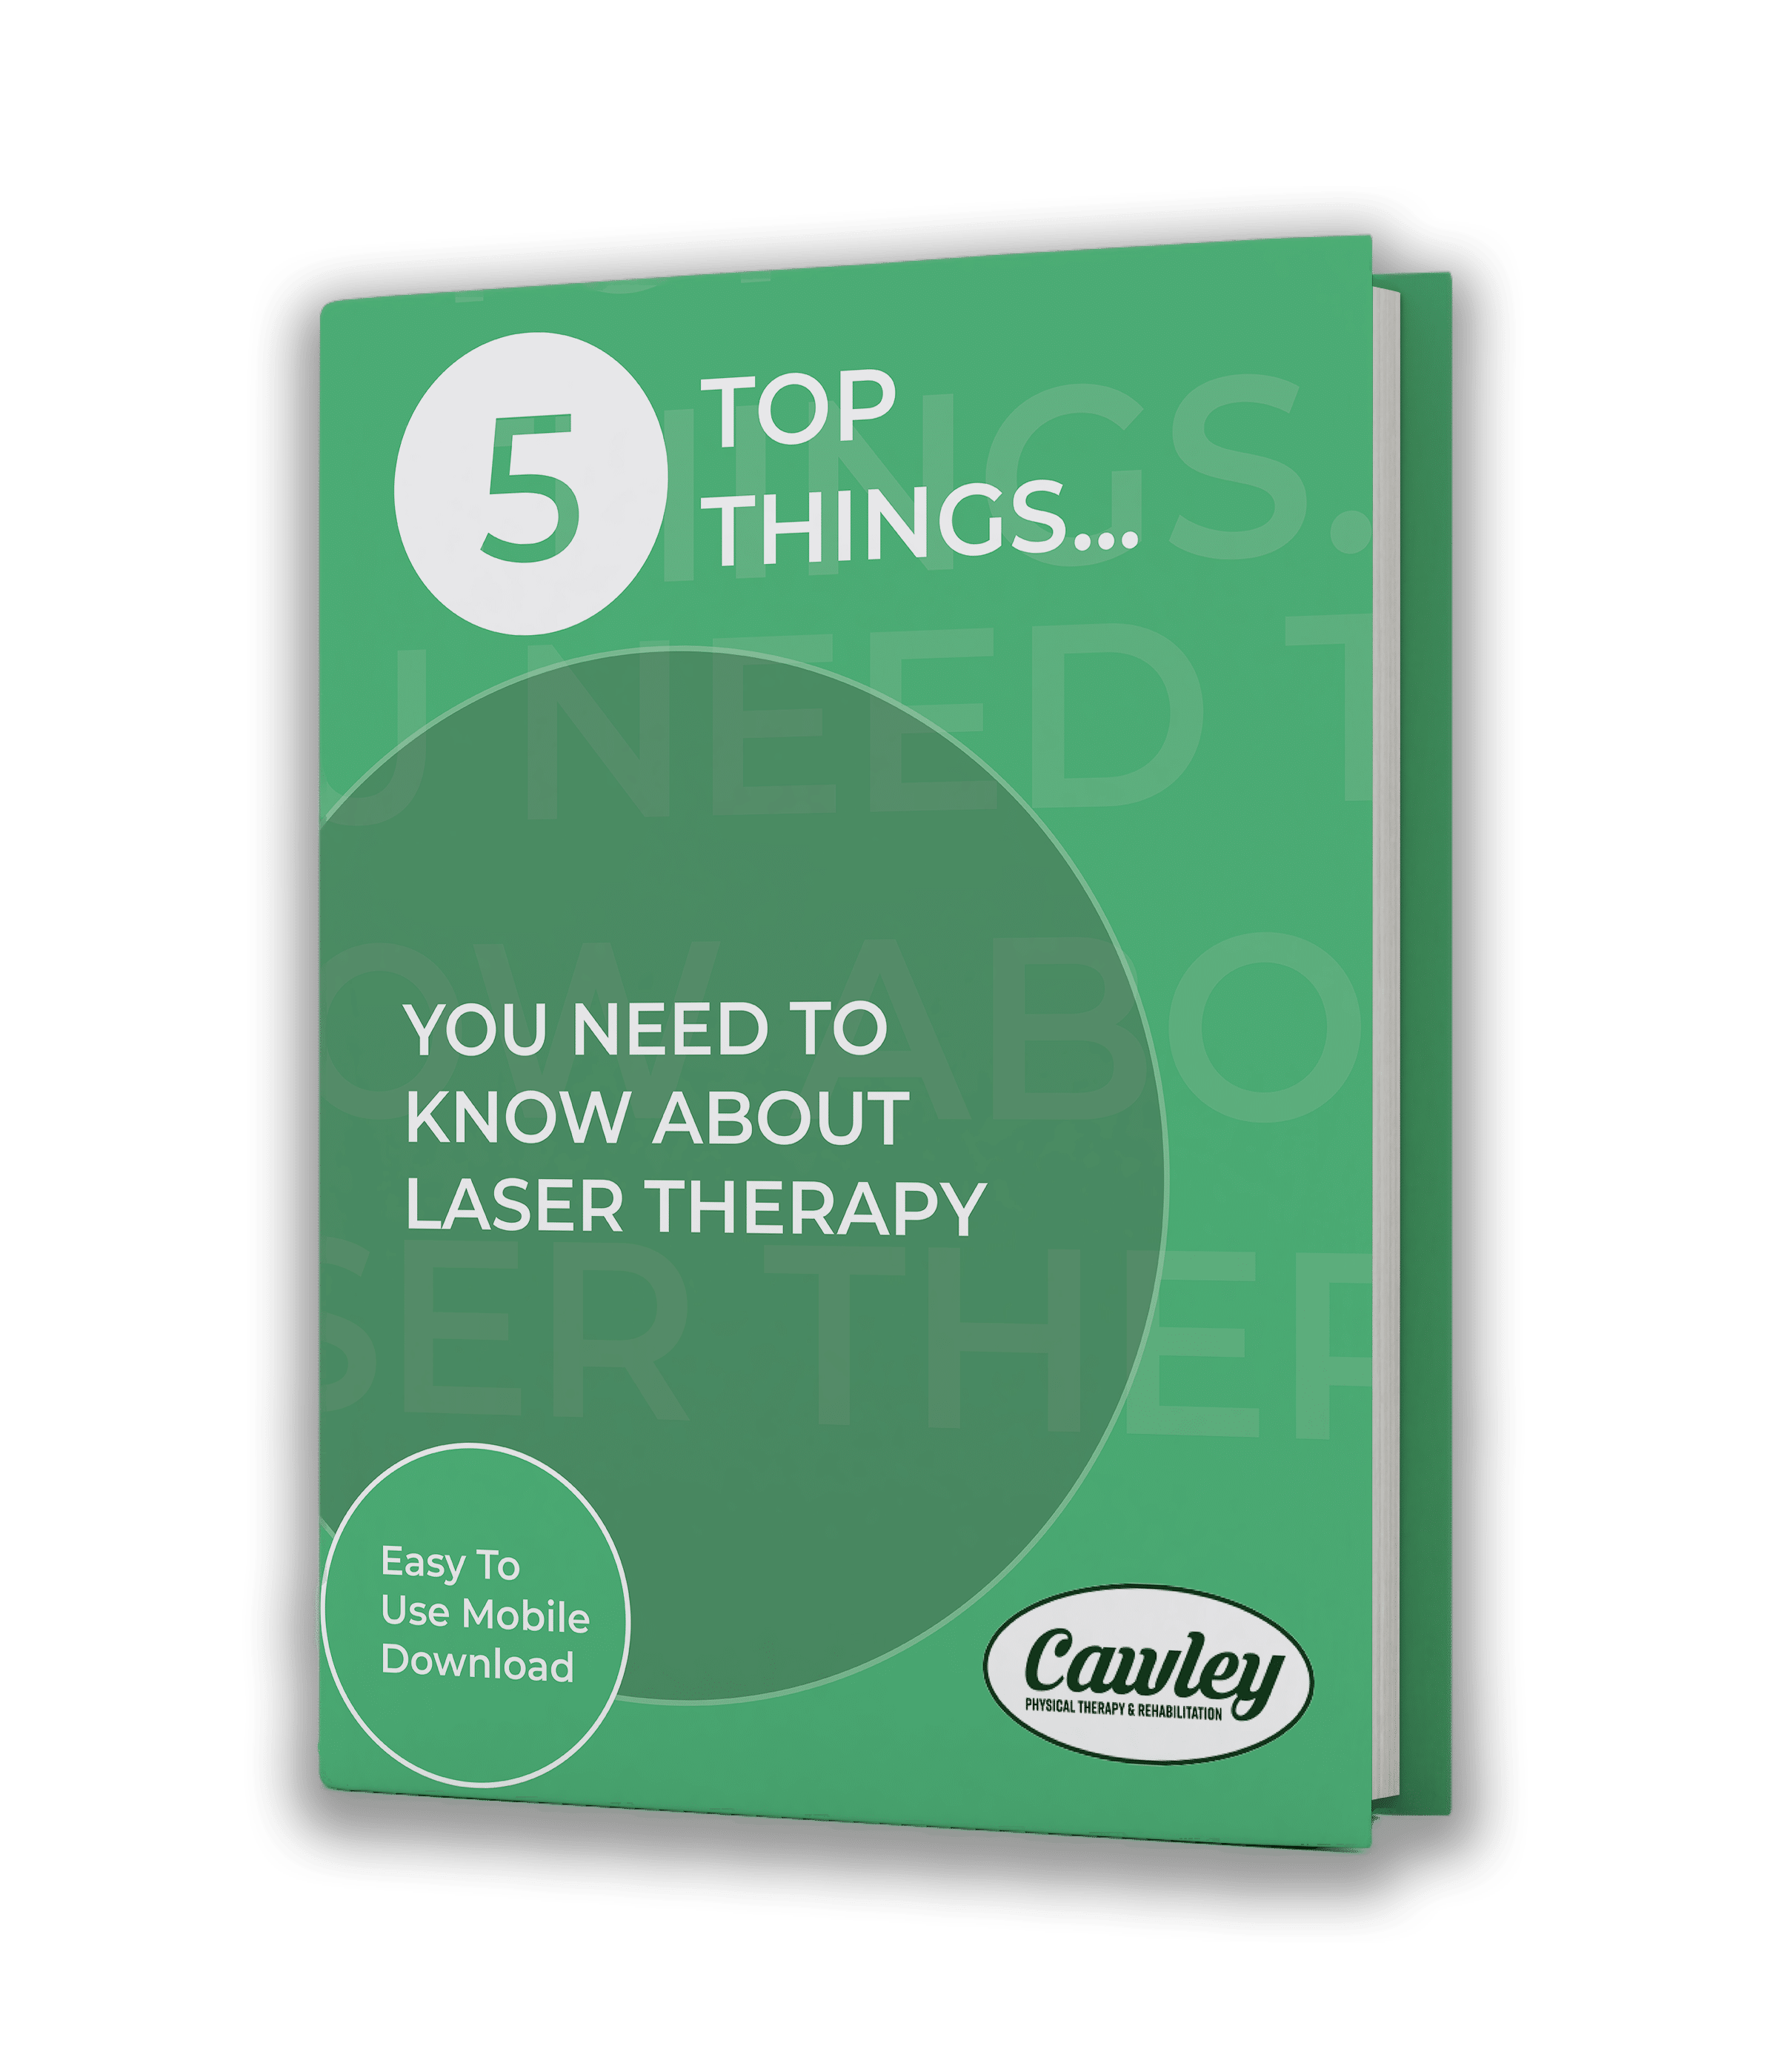 5 Top Things You Need to Know About Laser Therapy